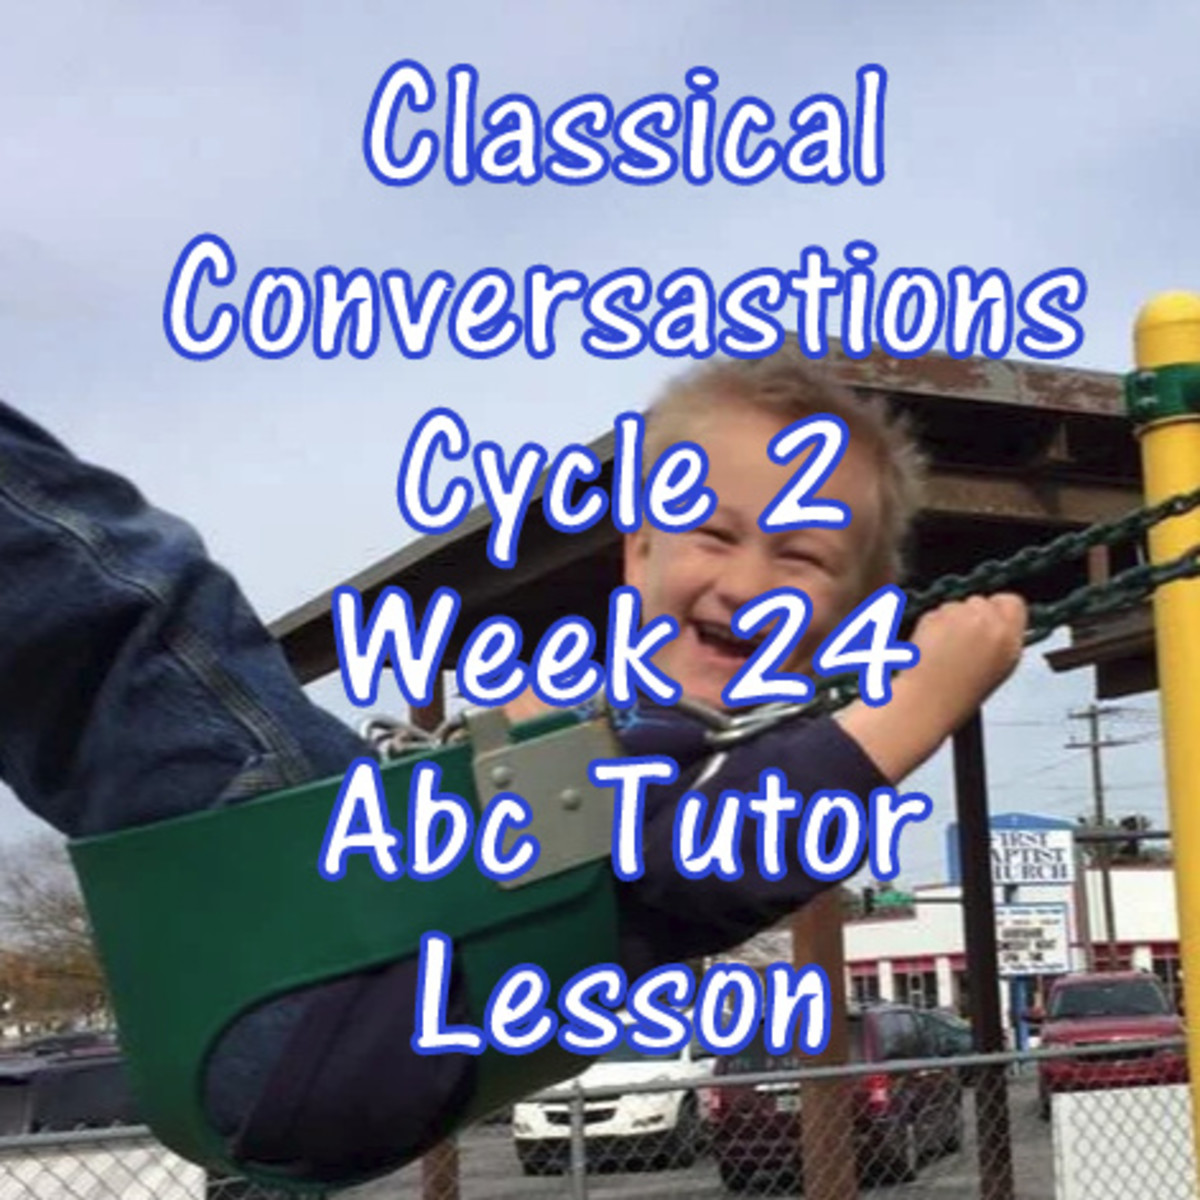 Classical Conversations CC Cycle 2 Week 24 Lesson for Abecedarians